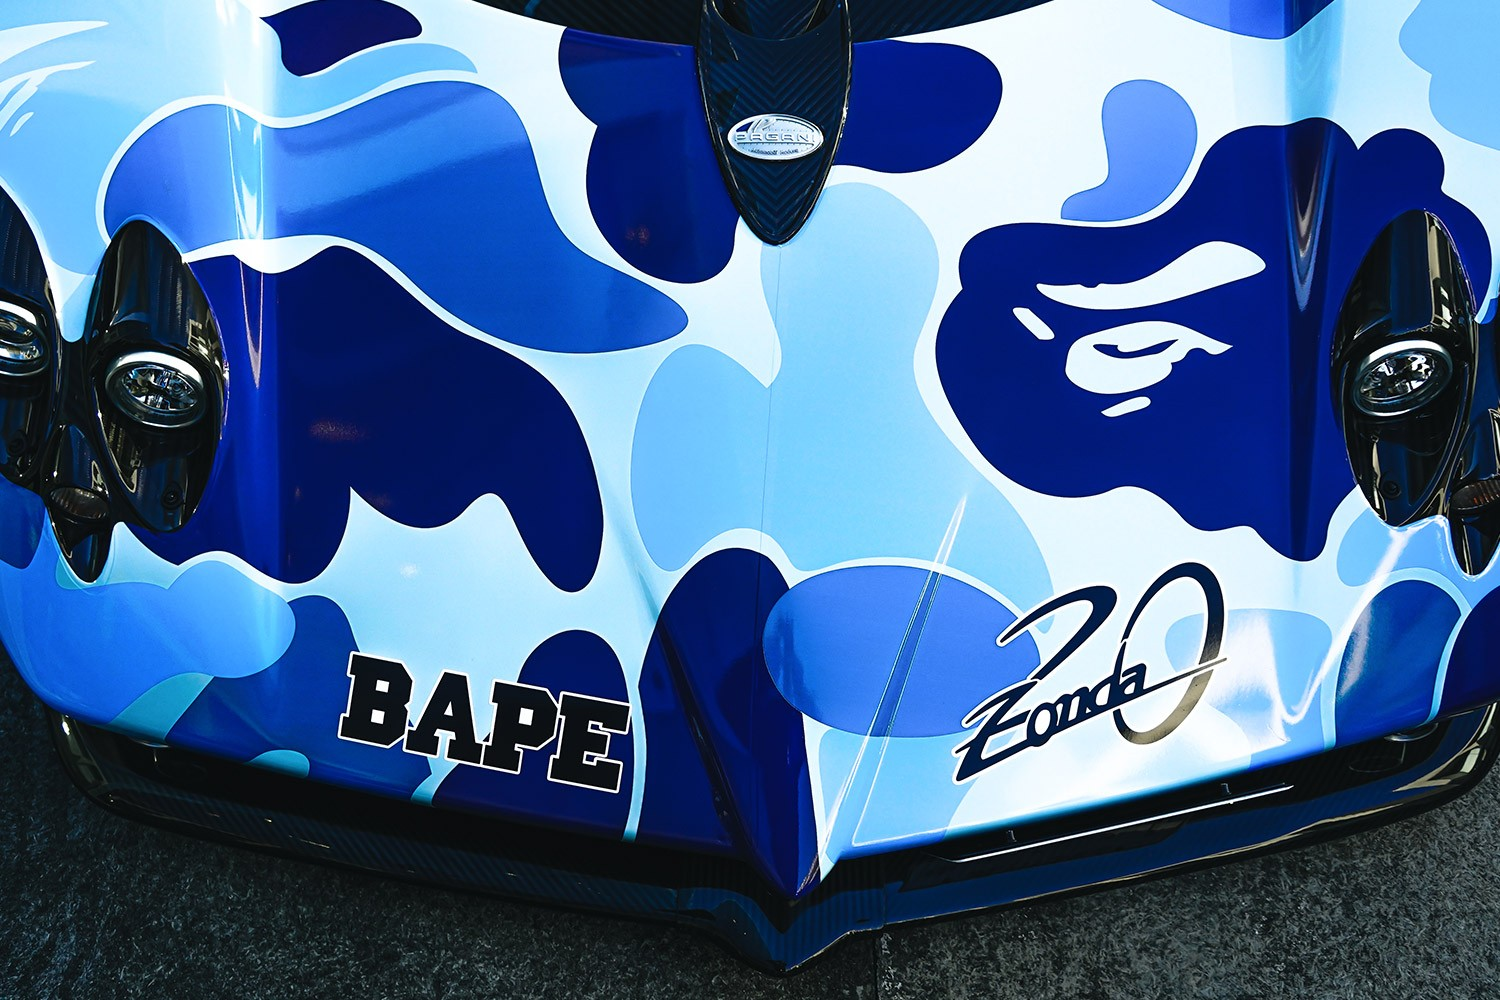 BAPE Pagani Capsule Collection Launch at Suzuka Circuit collaboration zonda 20th anniversary ape shall never kill ape luxury car speed Release info Date Buy T shirt hoodie baby milo